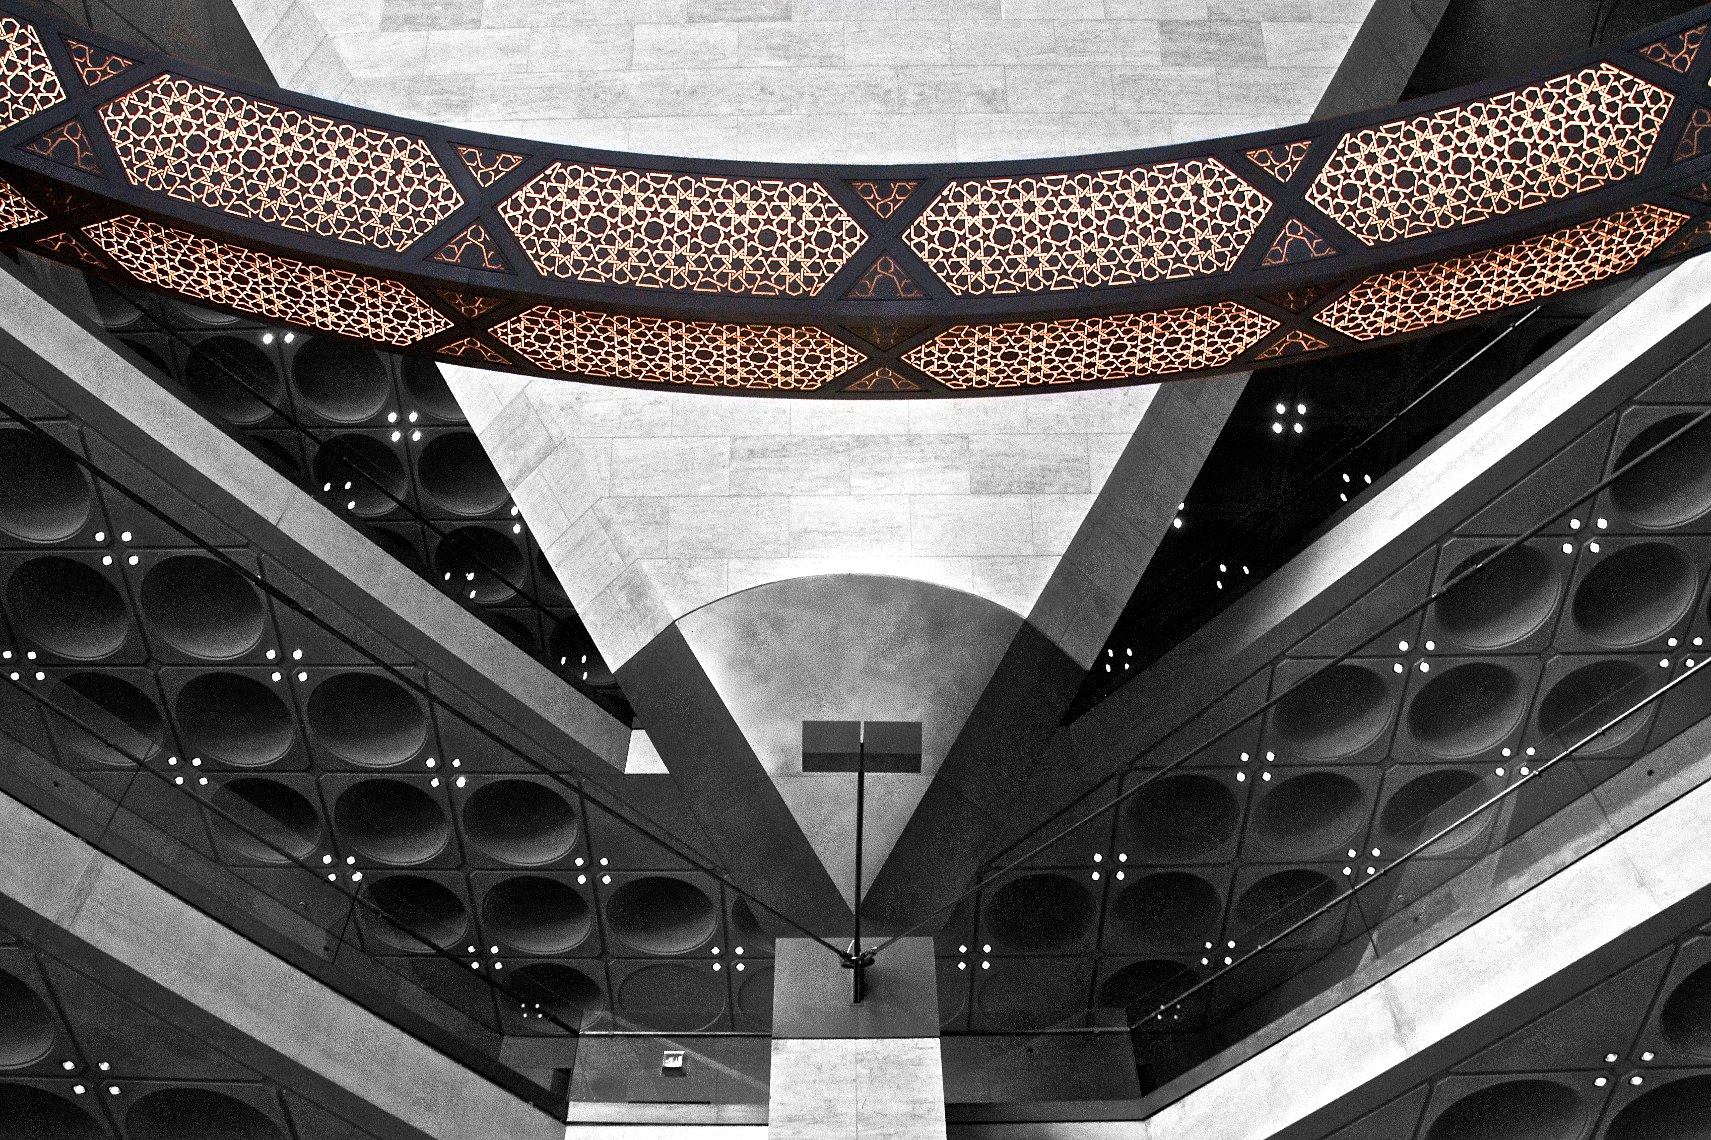 Qatar Doha Museum of Islamic Art interior black and white Necklace 2